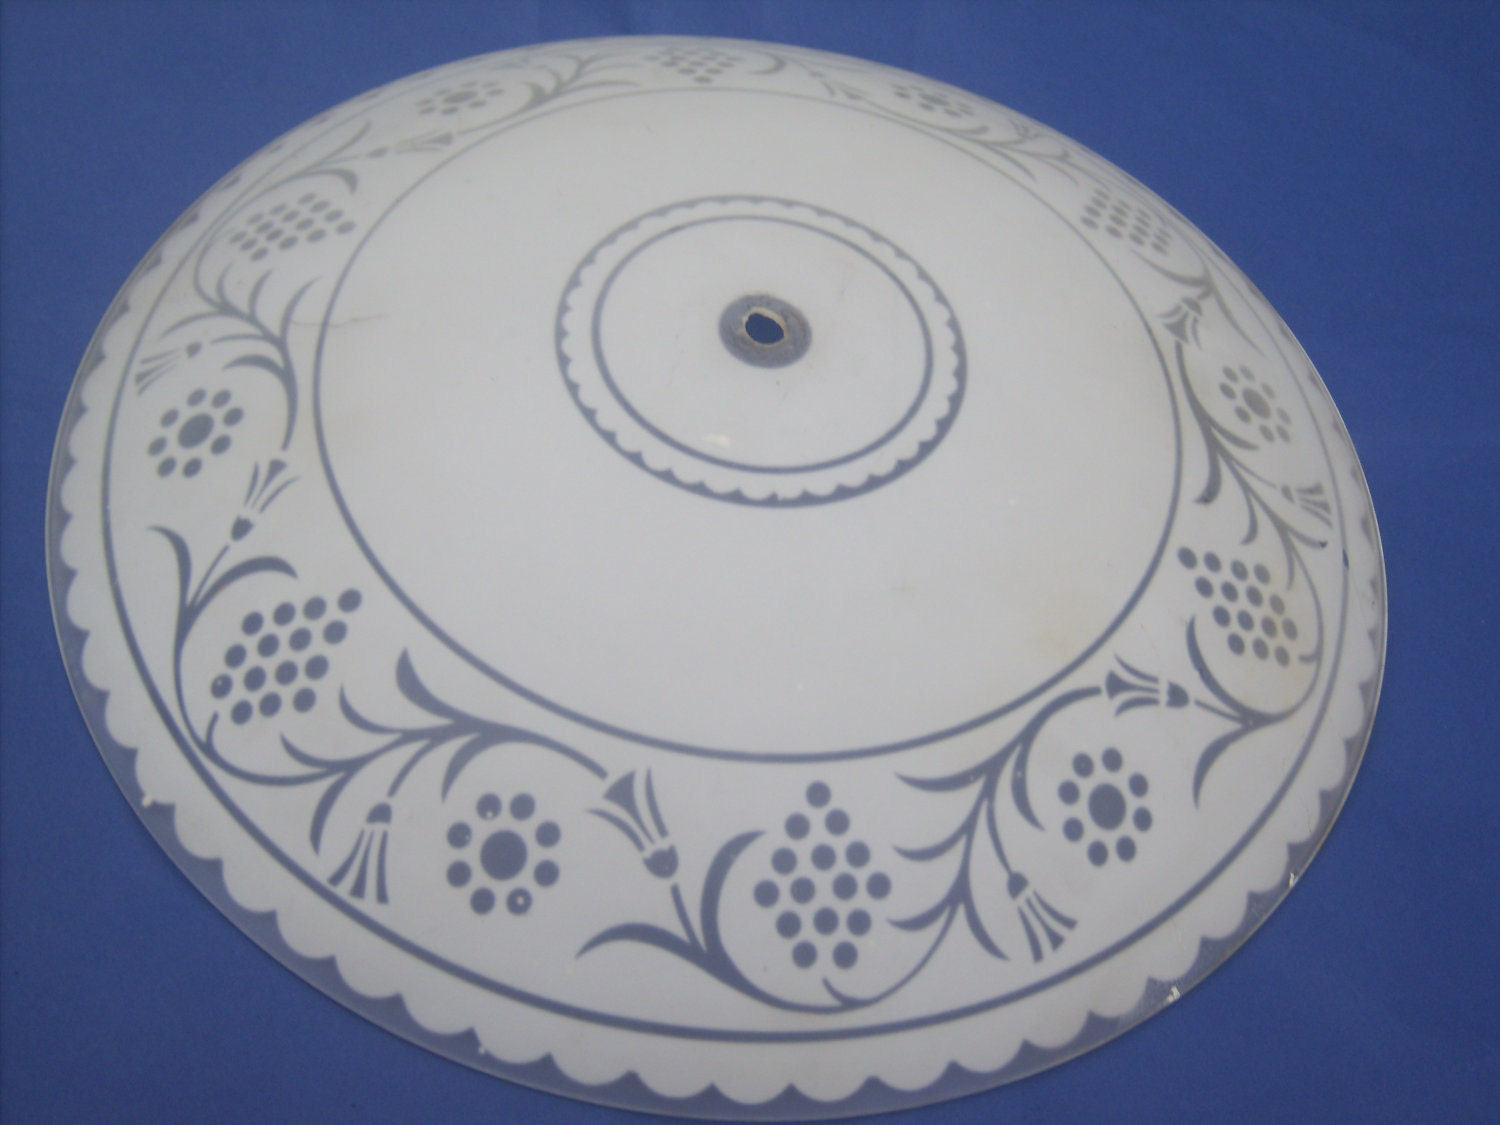 Ceiling light heat covers : Large round frosted glass ceiling light cover